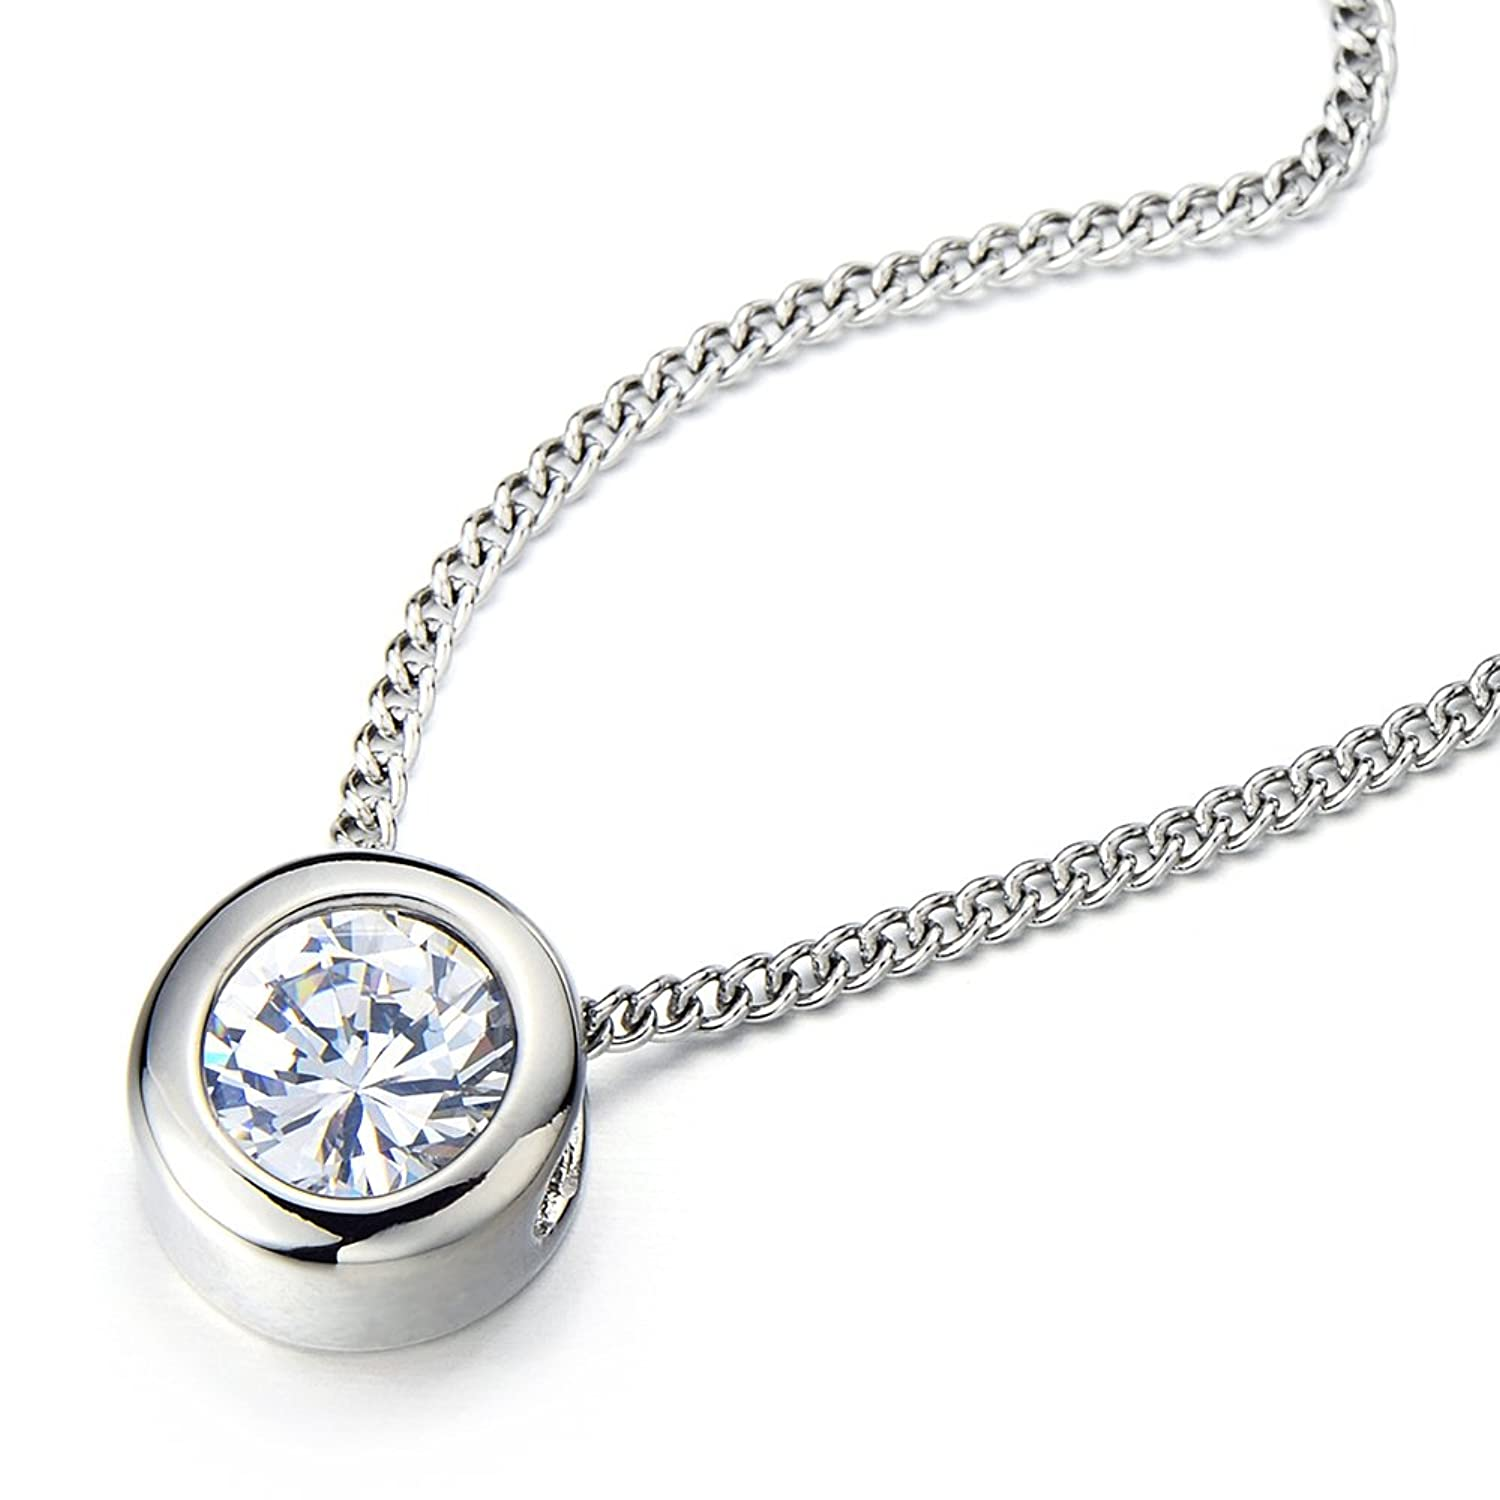 necklace iillx bezel brilliant round set diamond